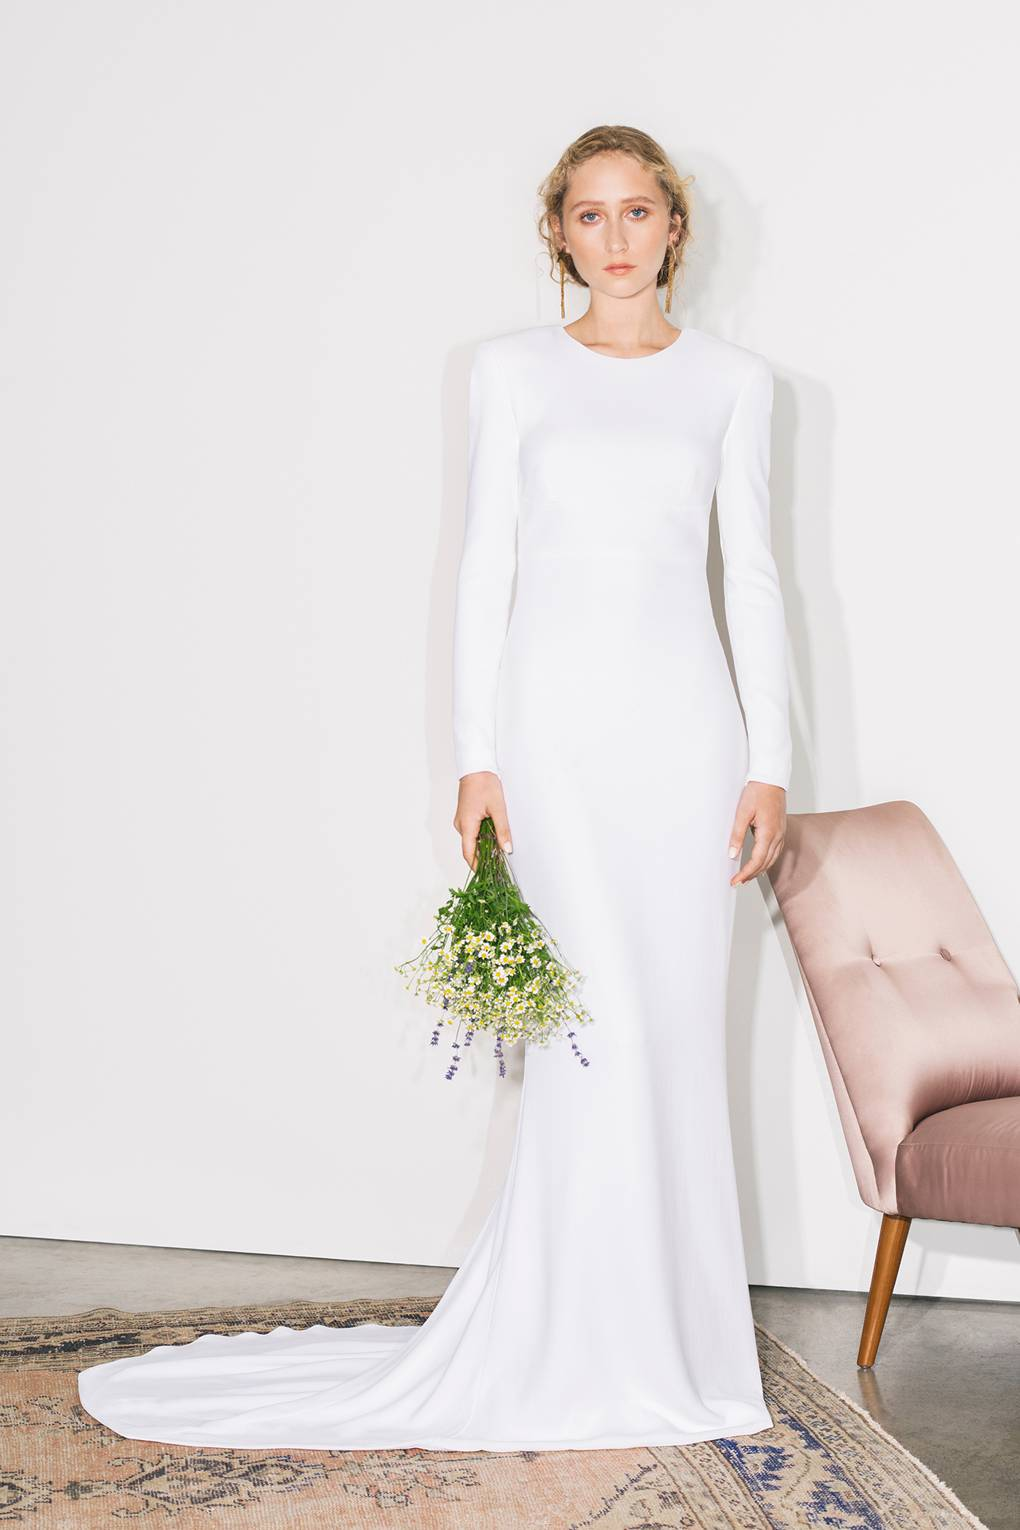 0c51b89250 Stella McCartney Releases Her Debut Wedding Dress Collection | Glamour UK